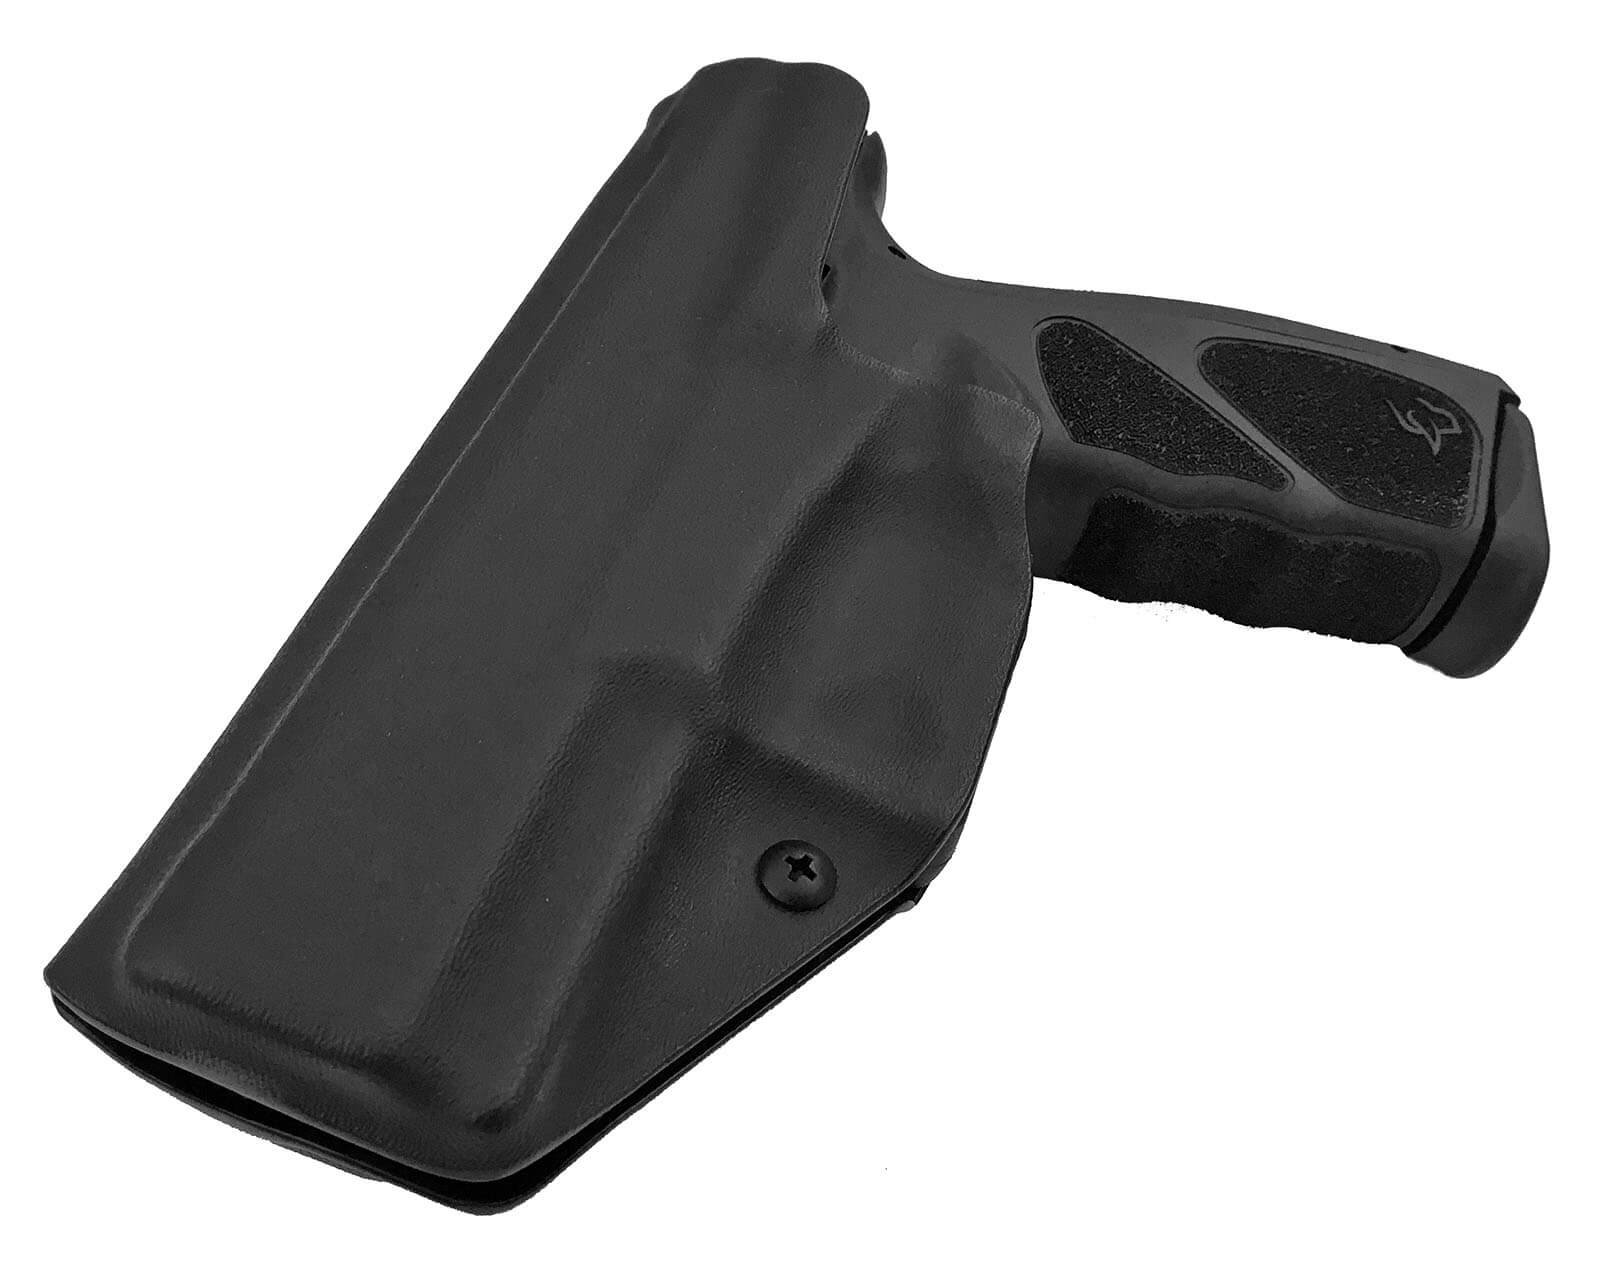 Coldre TS9 Kydex® Taurus Striker - Slim - Saque Rápido Velado - 080""